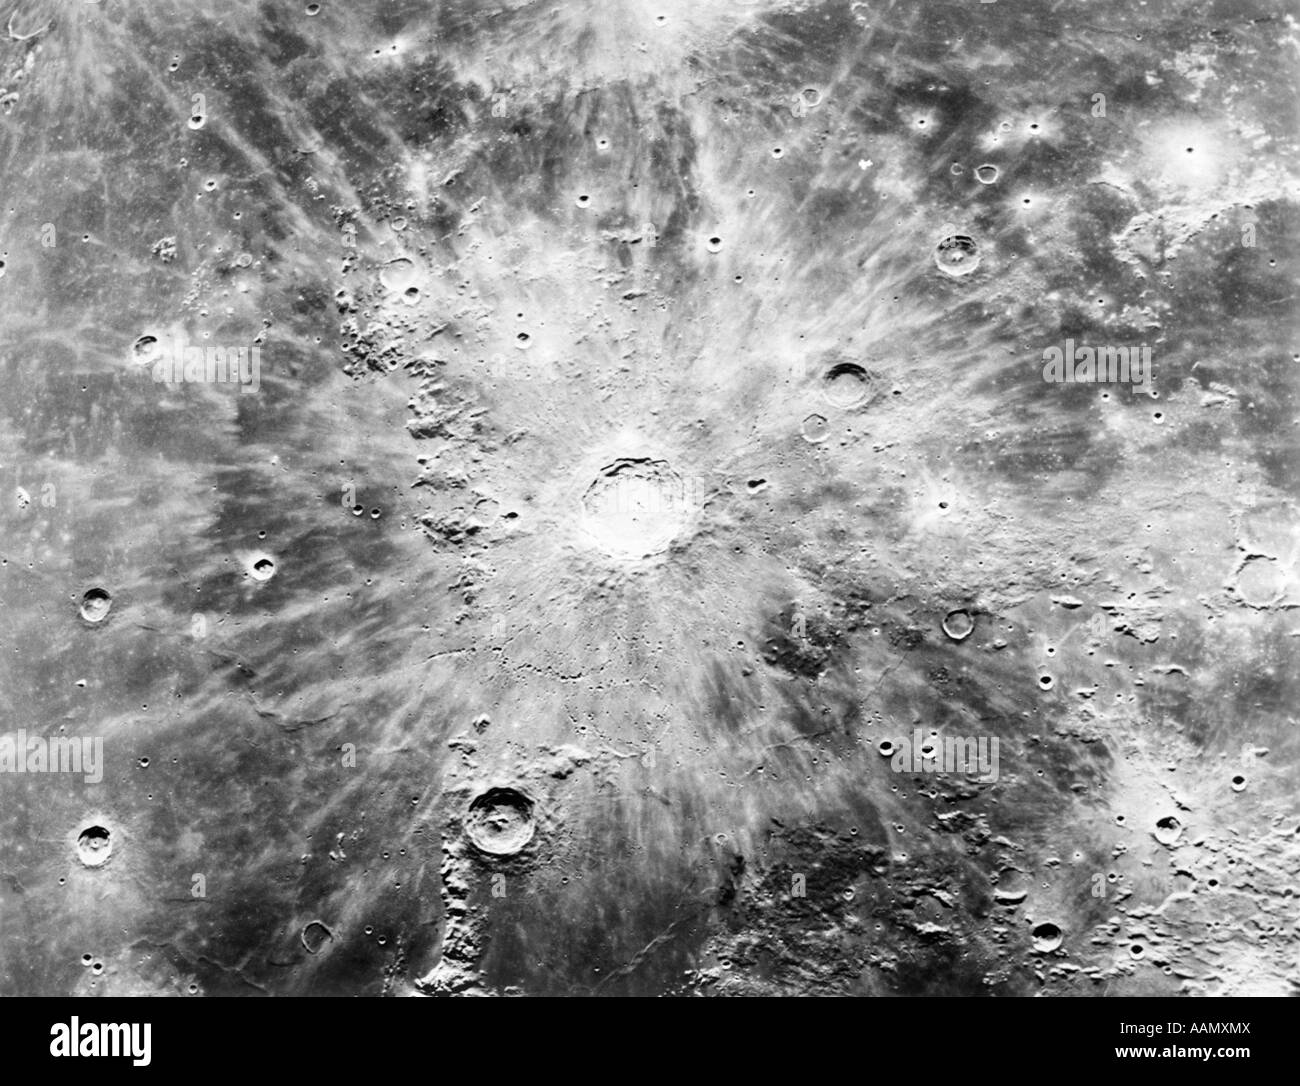 1960s CRATERS ON LUNAR SURFACE MOON COPERNICUS REGION - Stock Image